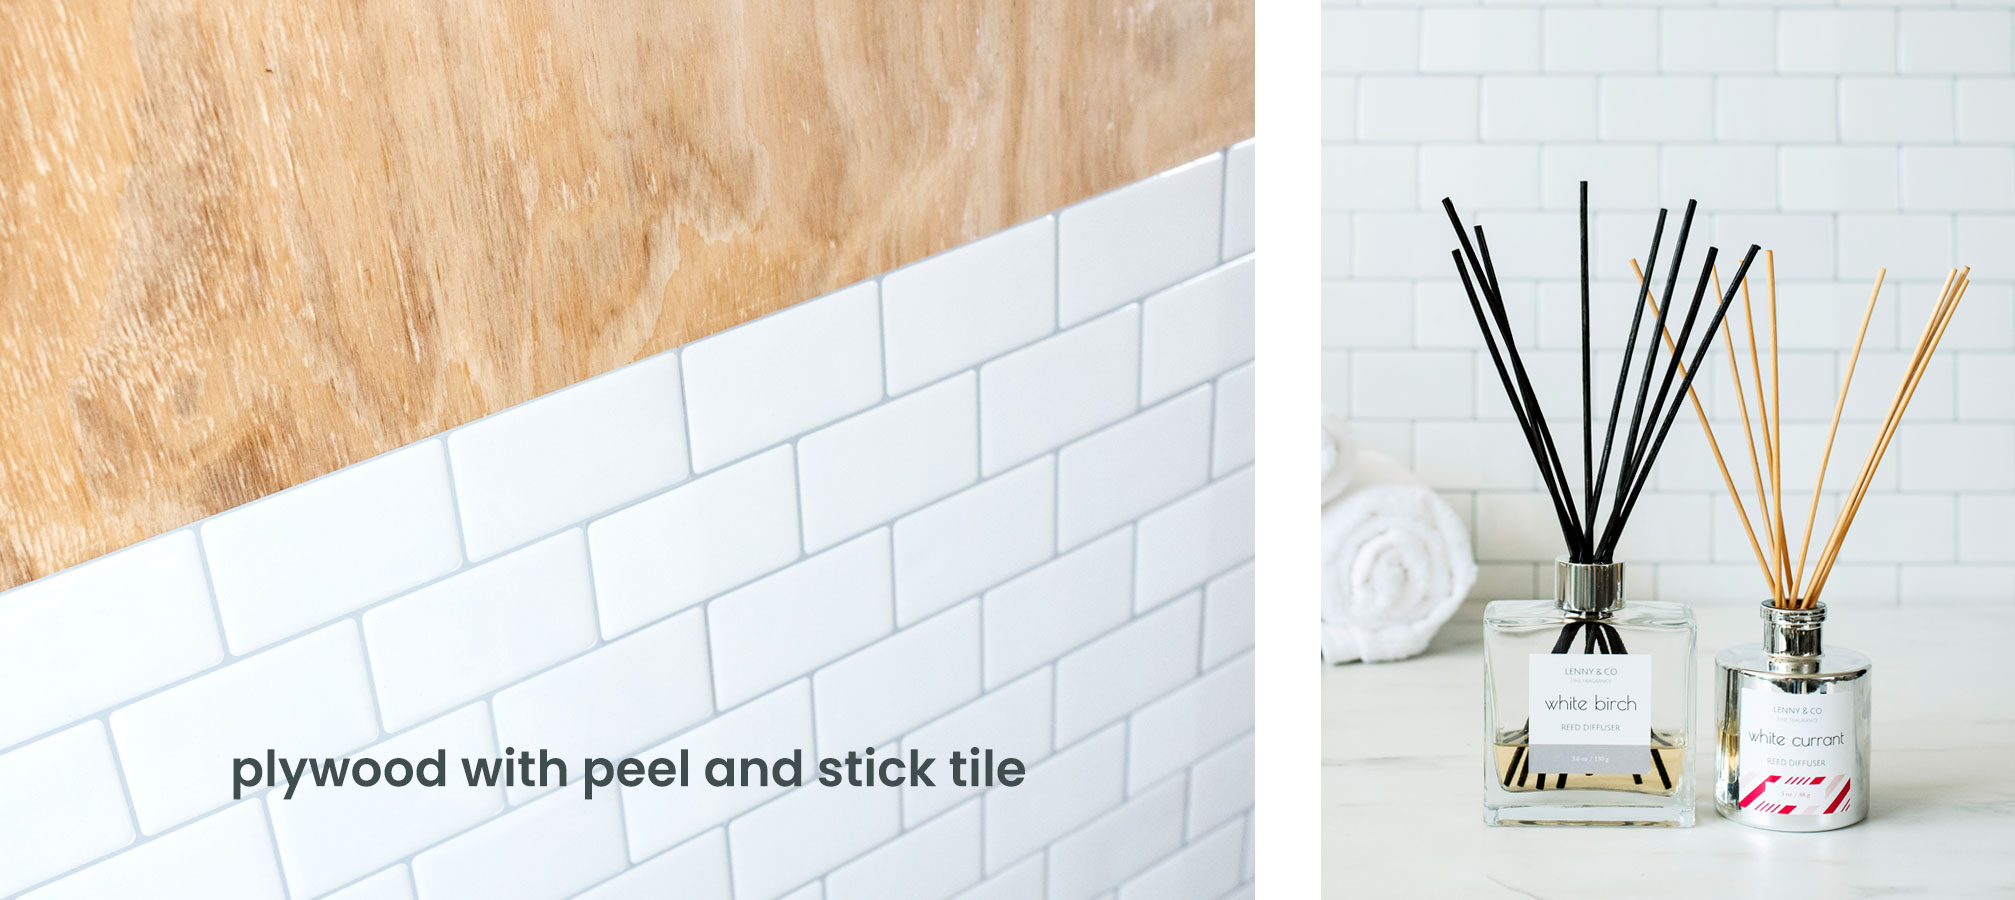 Reed diffusers in a tiled bathroom setting